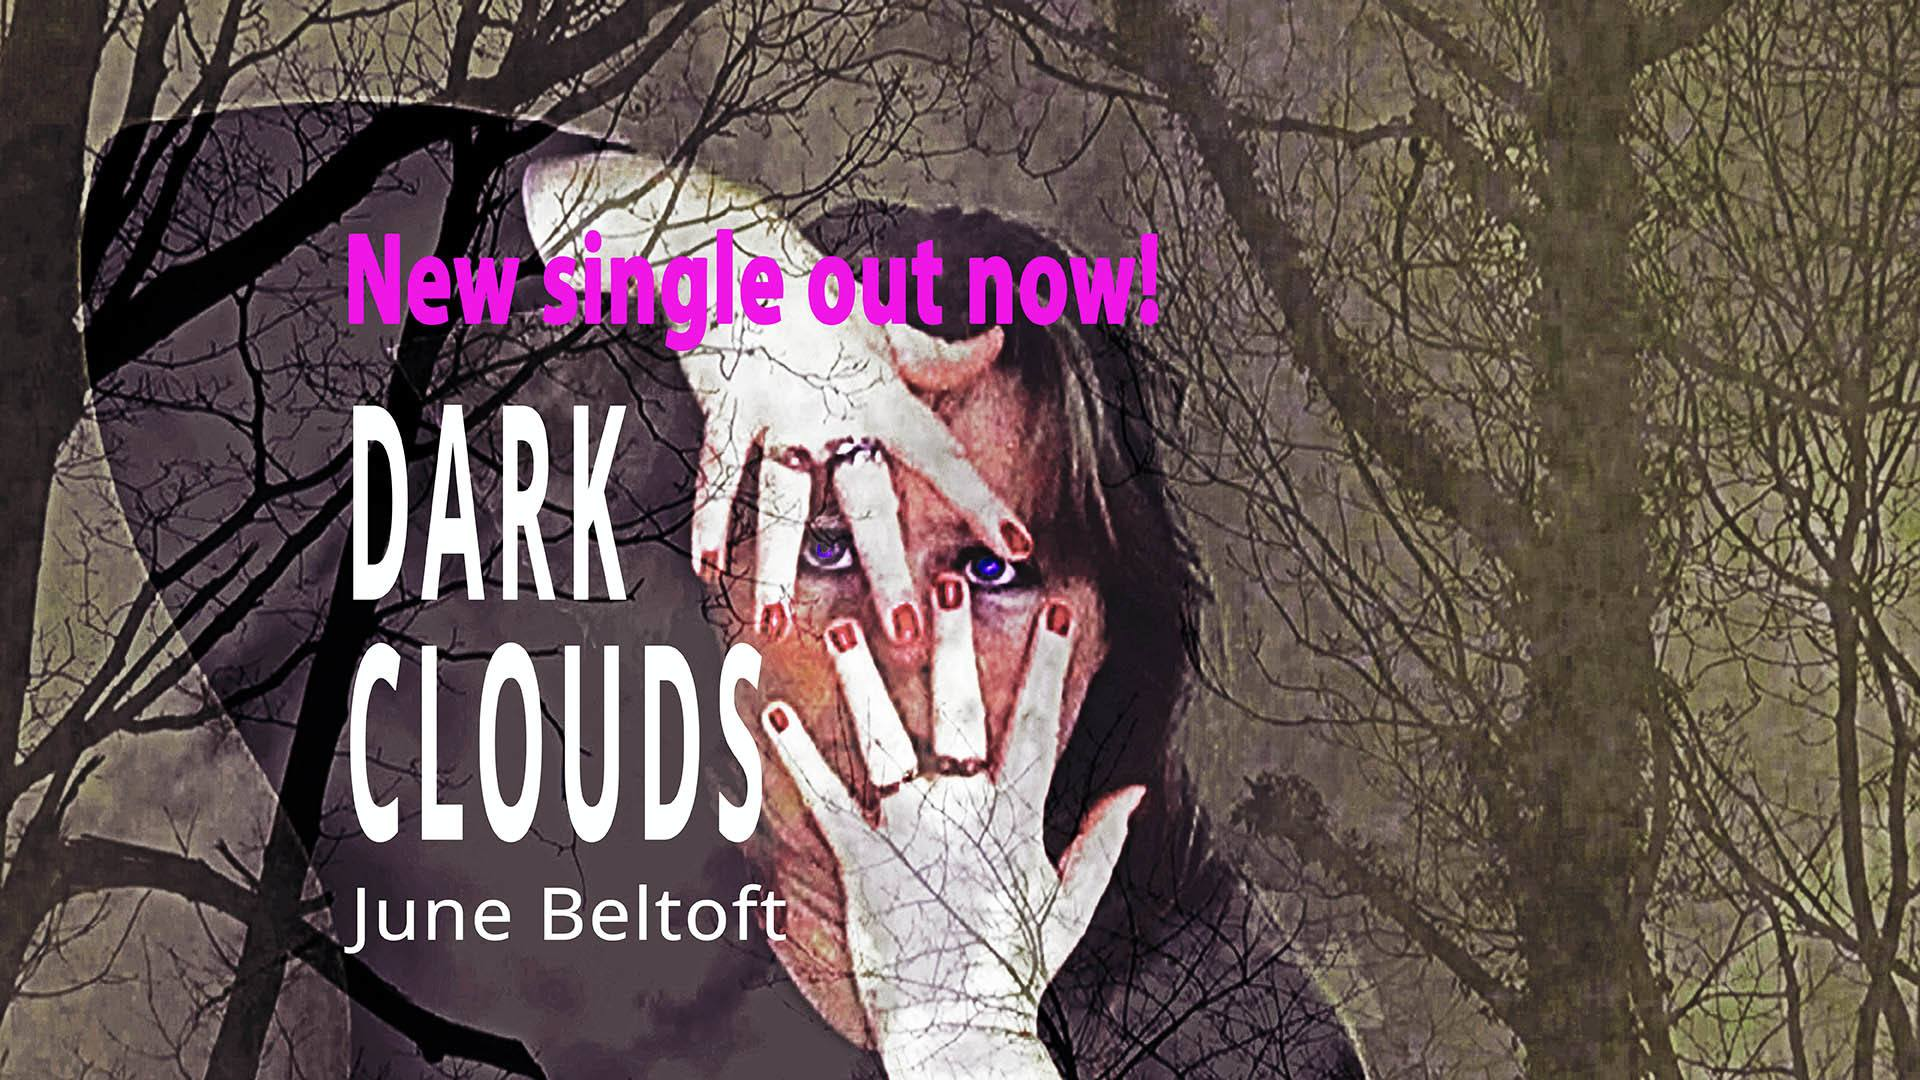 June Beltoft - Dark Clouds single released. The song is written by Dorthe Lima & June Beltoft and produced by Christoffer Høyer / Hoyersongs. The song is part of the EP project Twilight Dreams